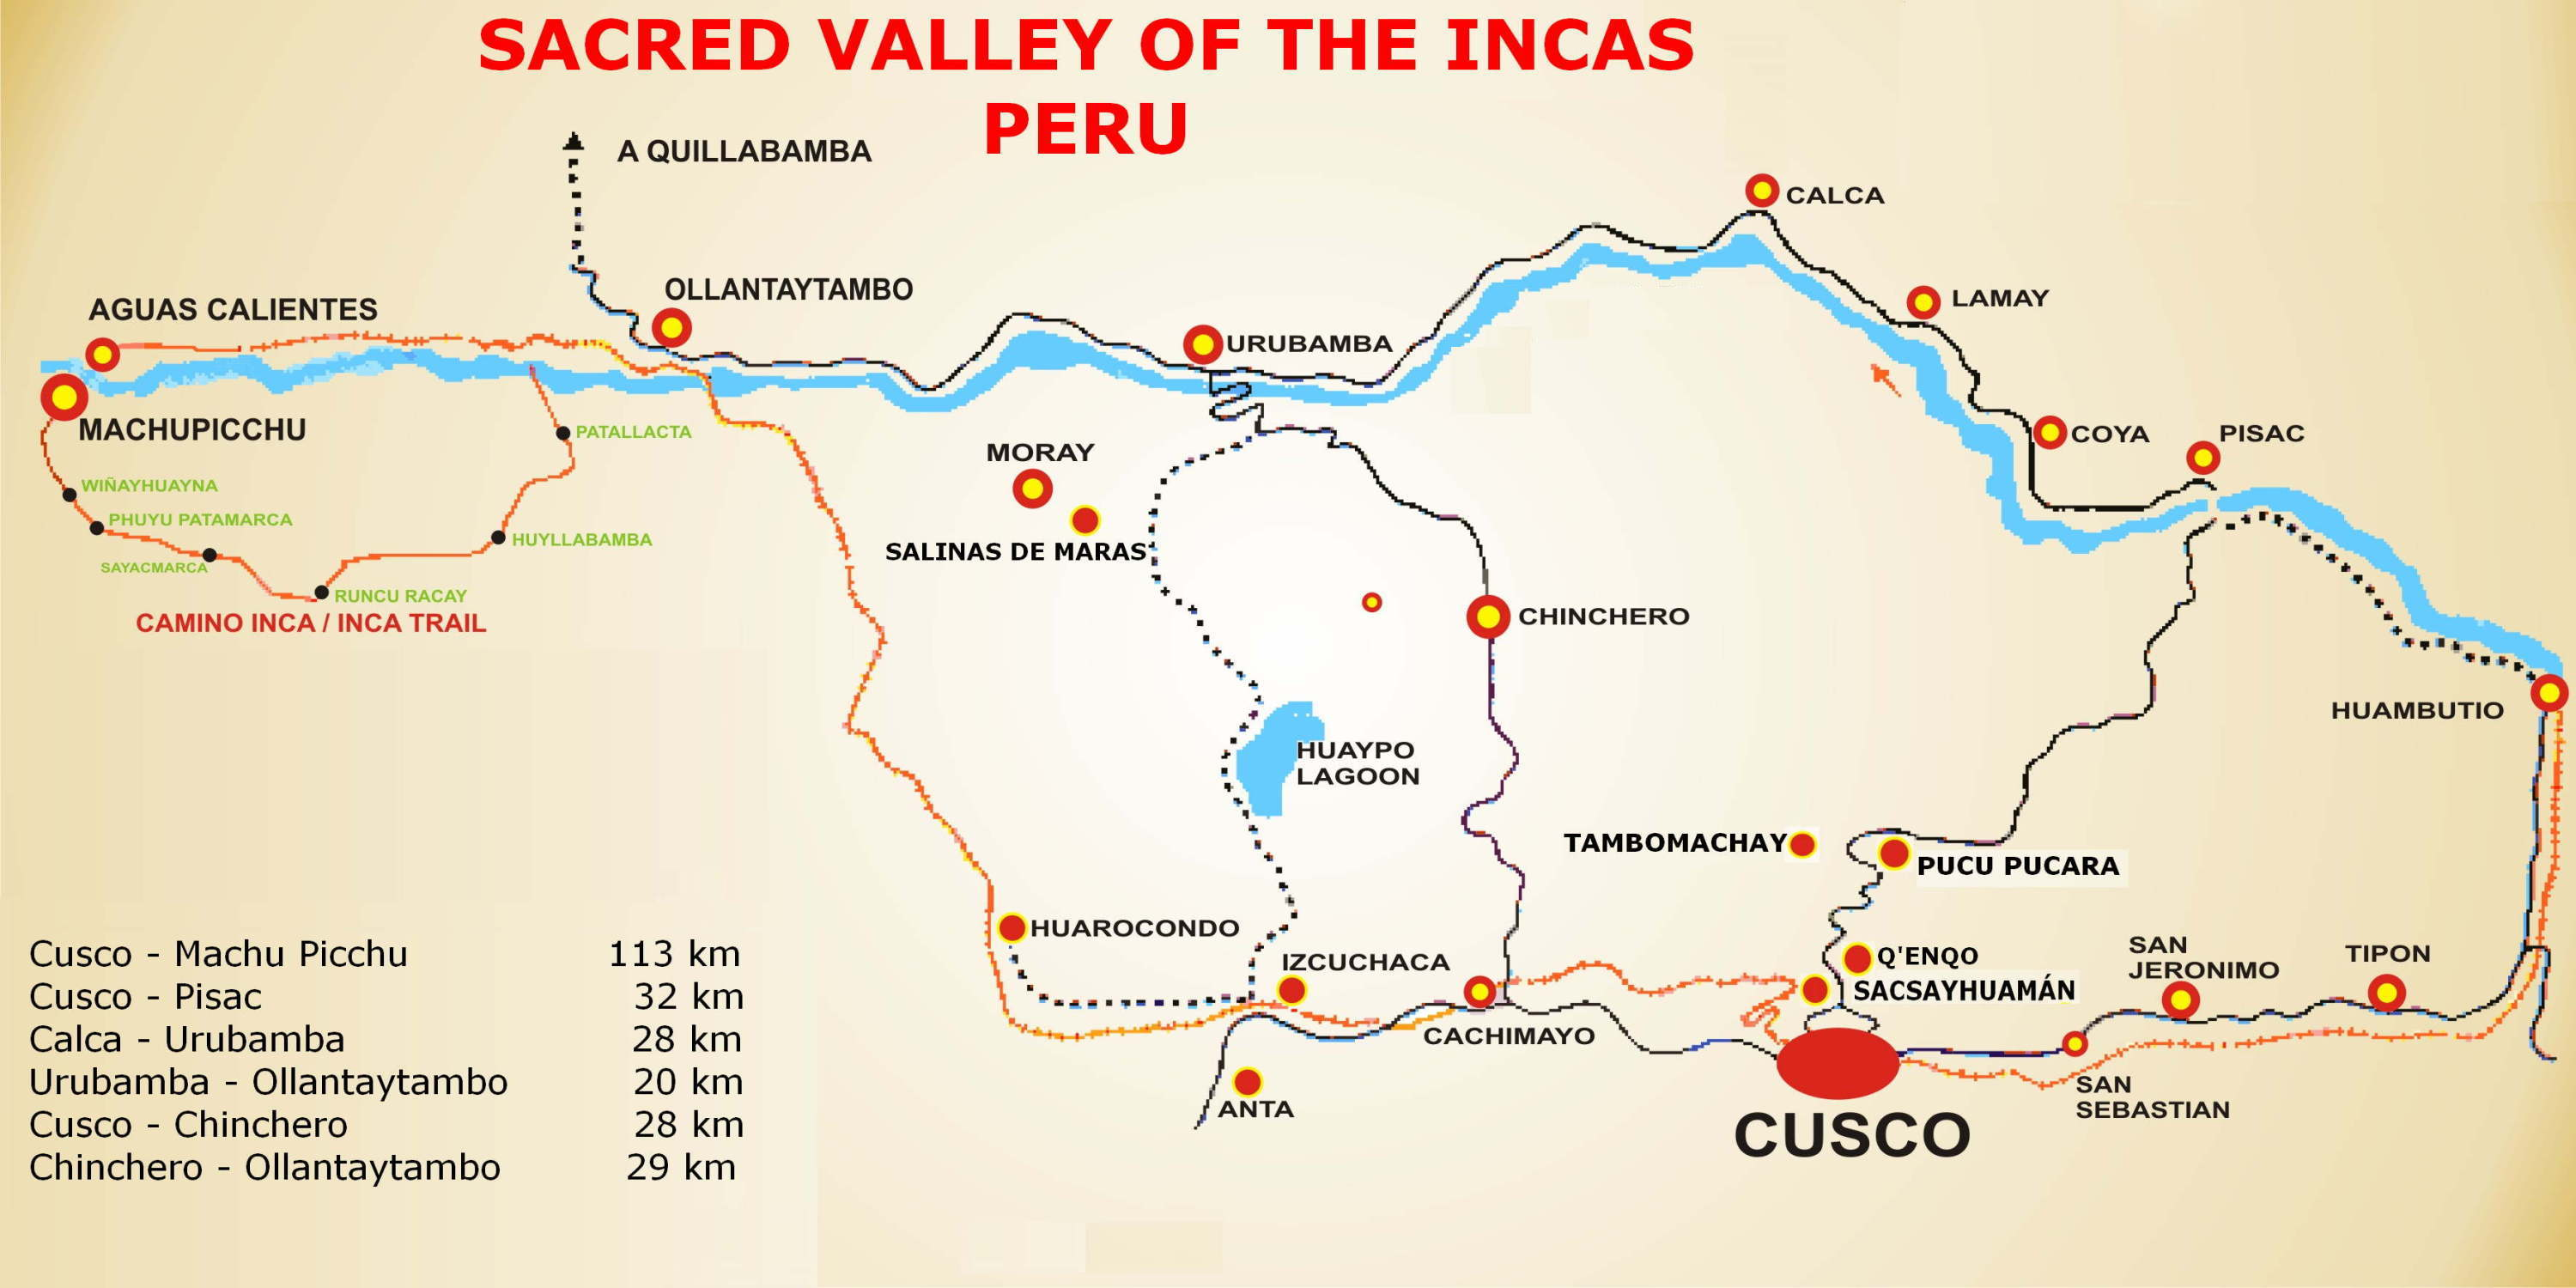 how to get to sacred valley from cusco